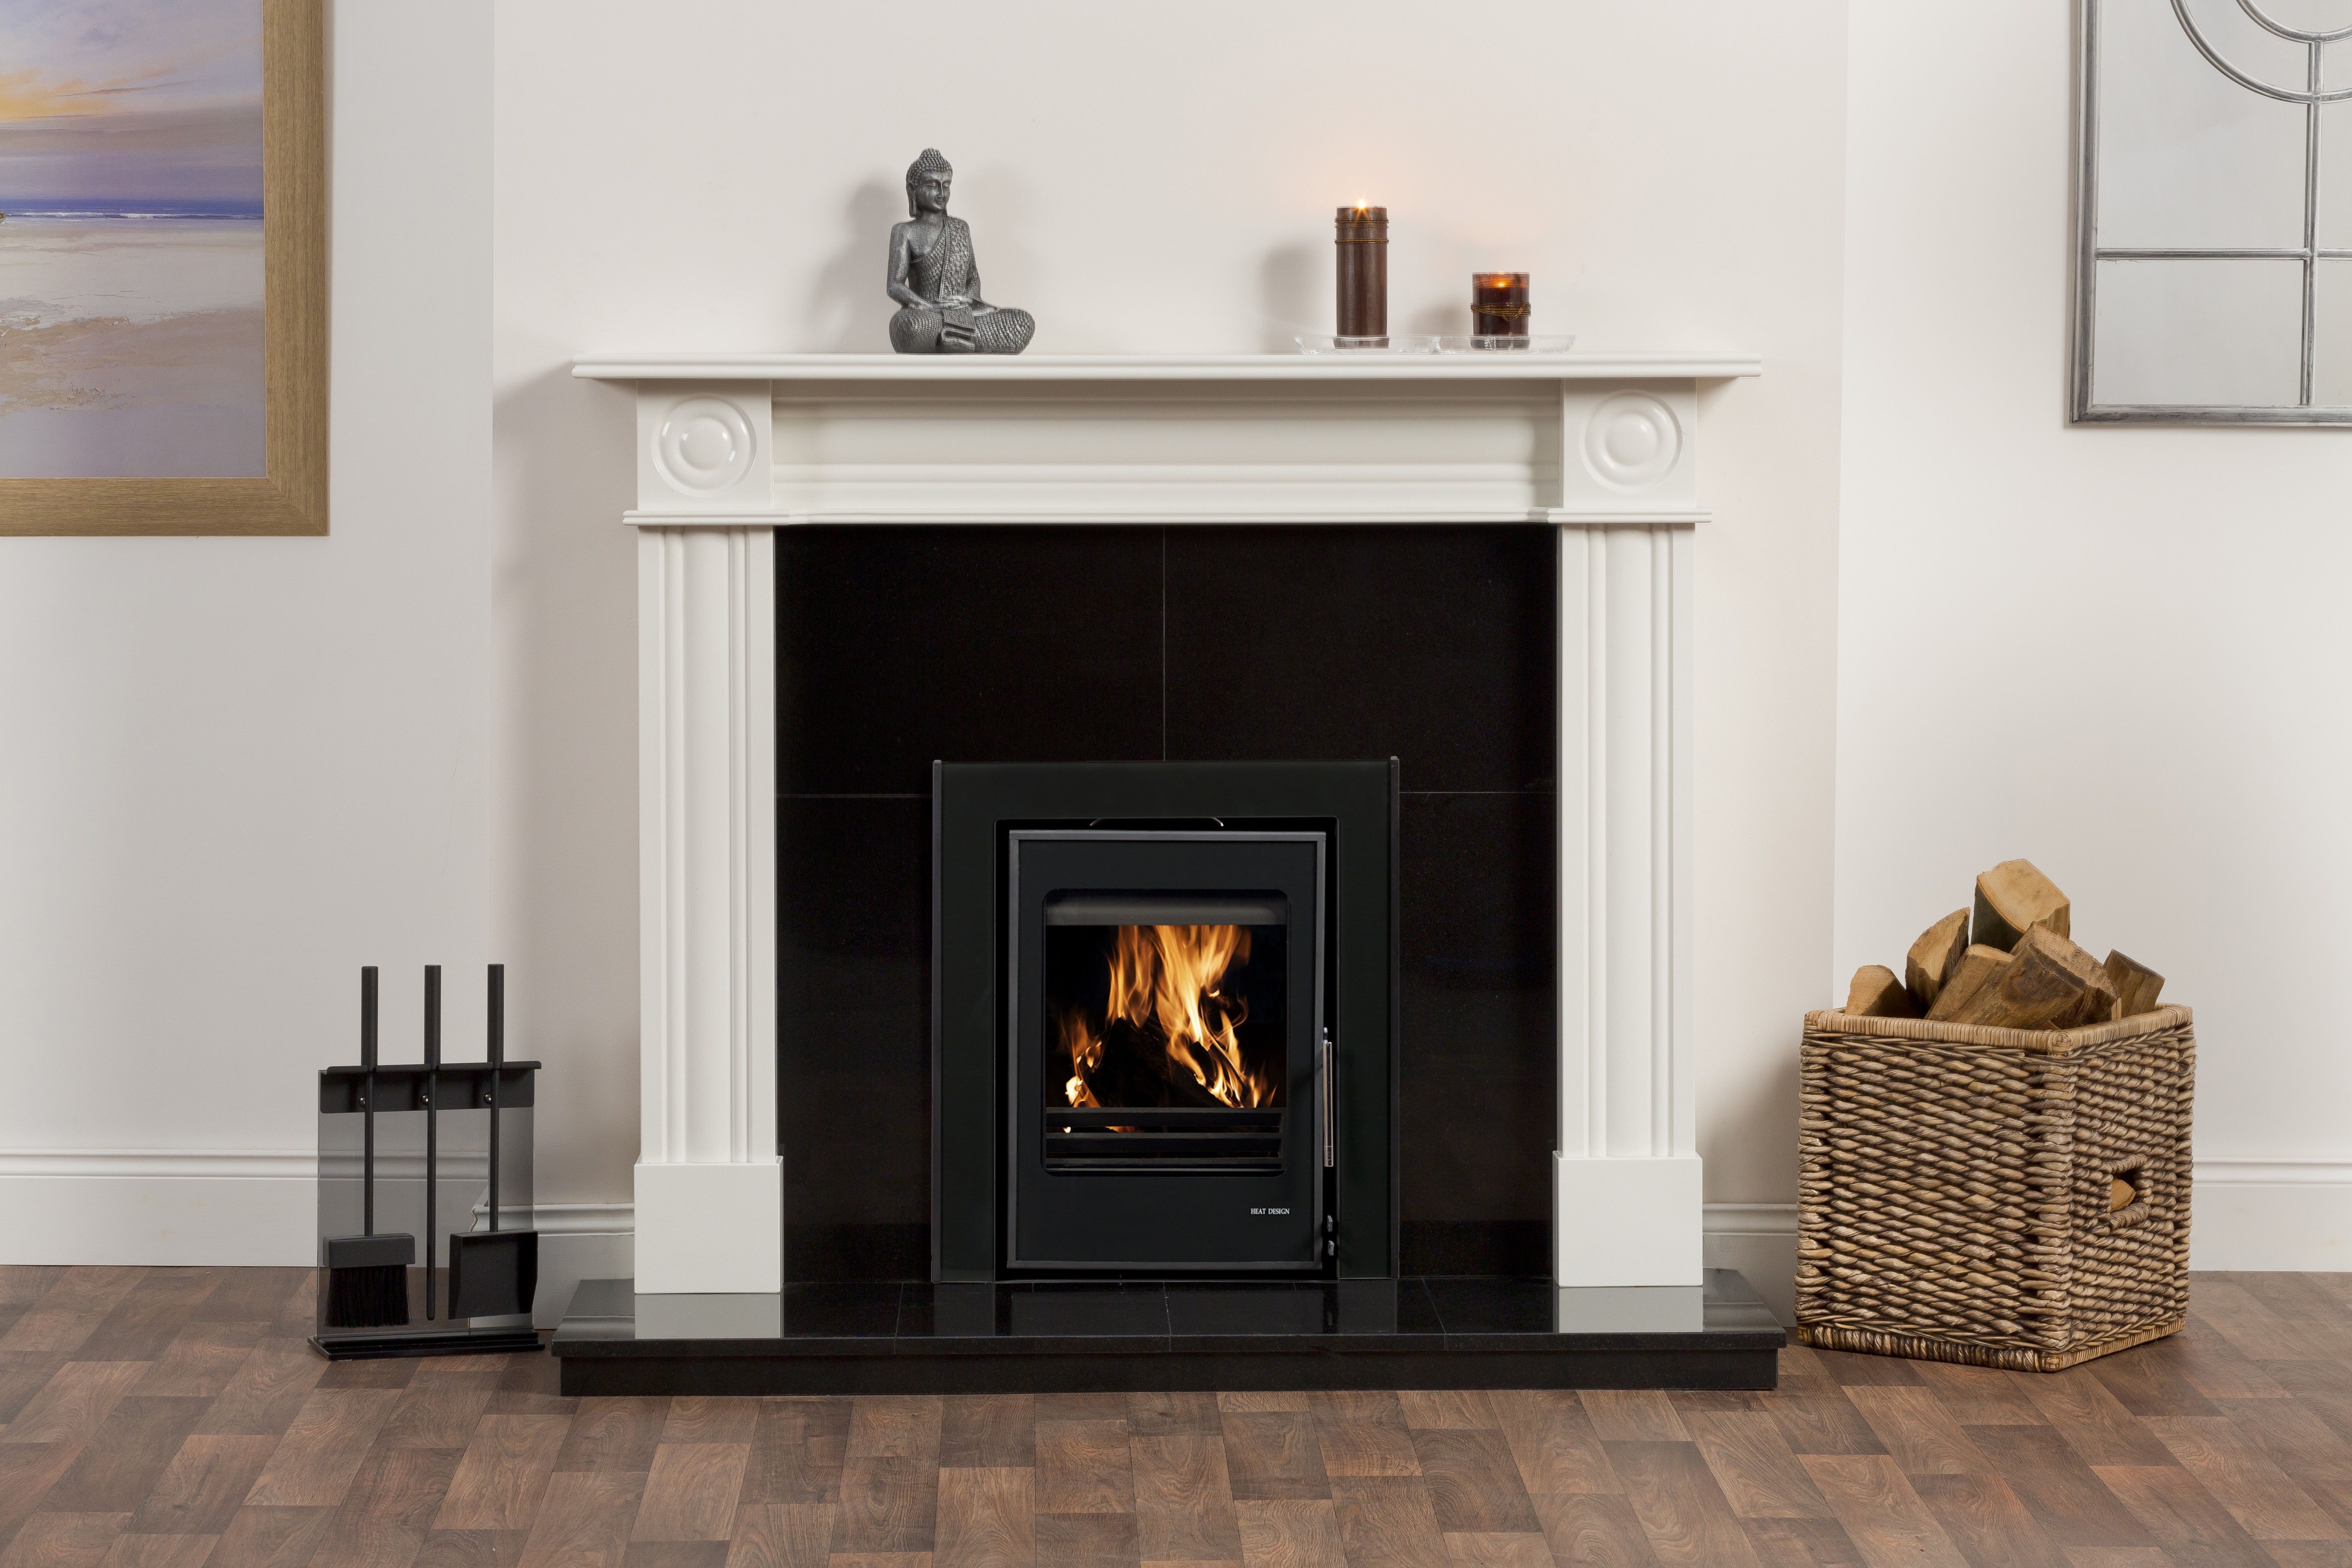 Black and White Fireplace Awesome Regent Pearla White Surround Pictured with A Black Granite